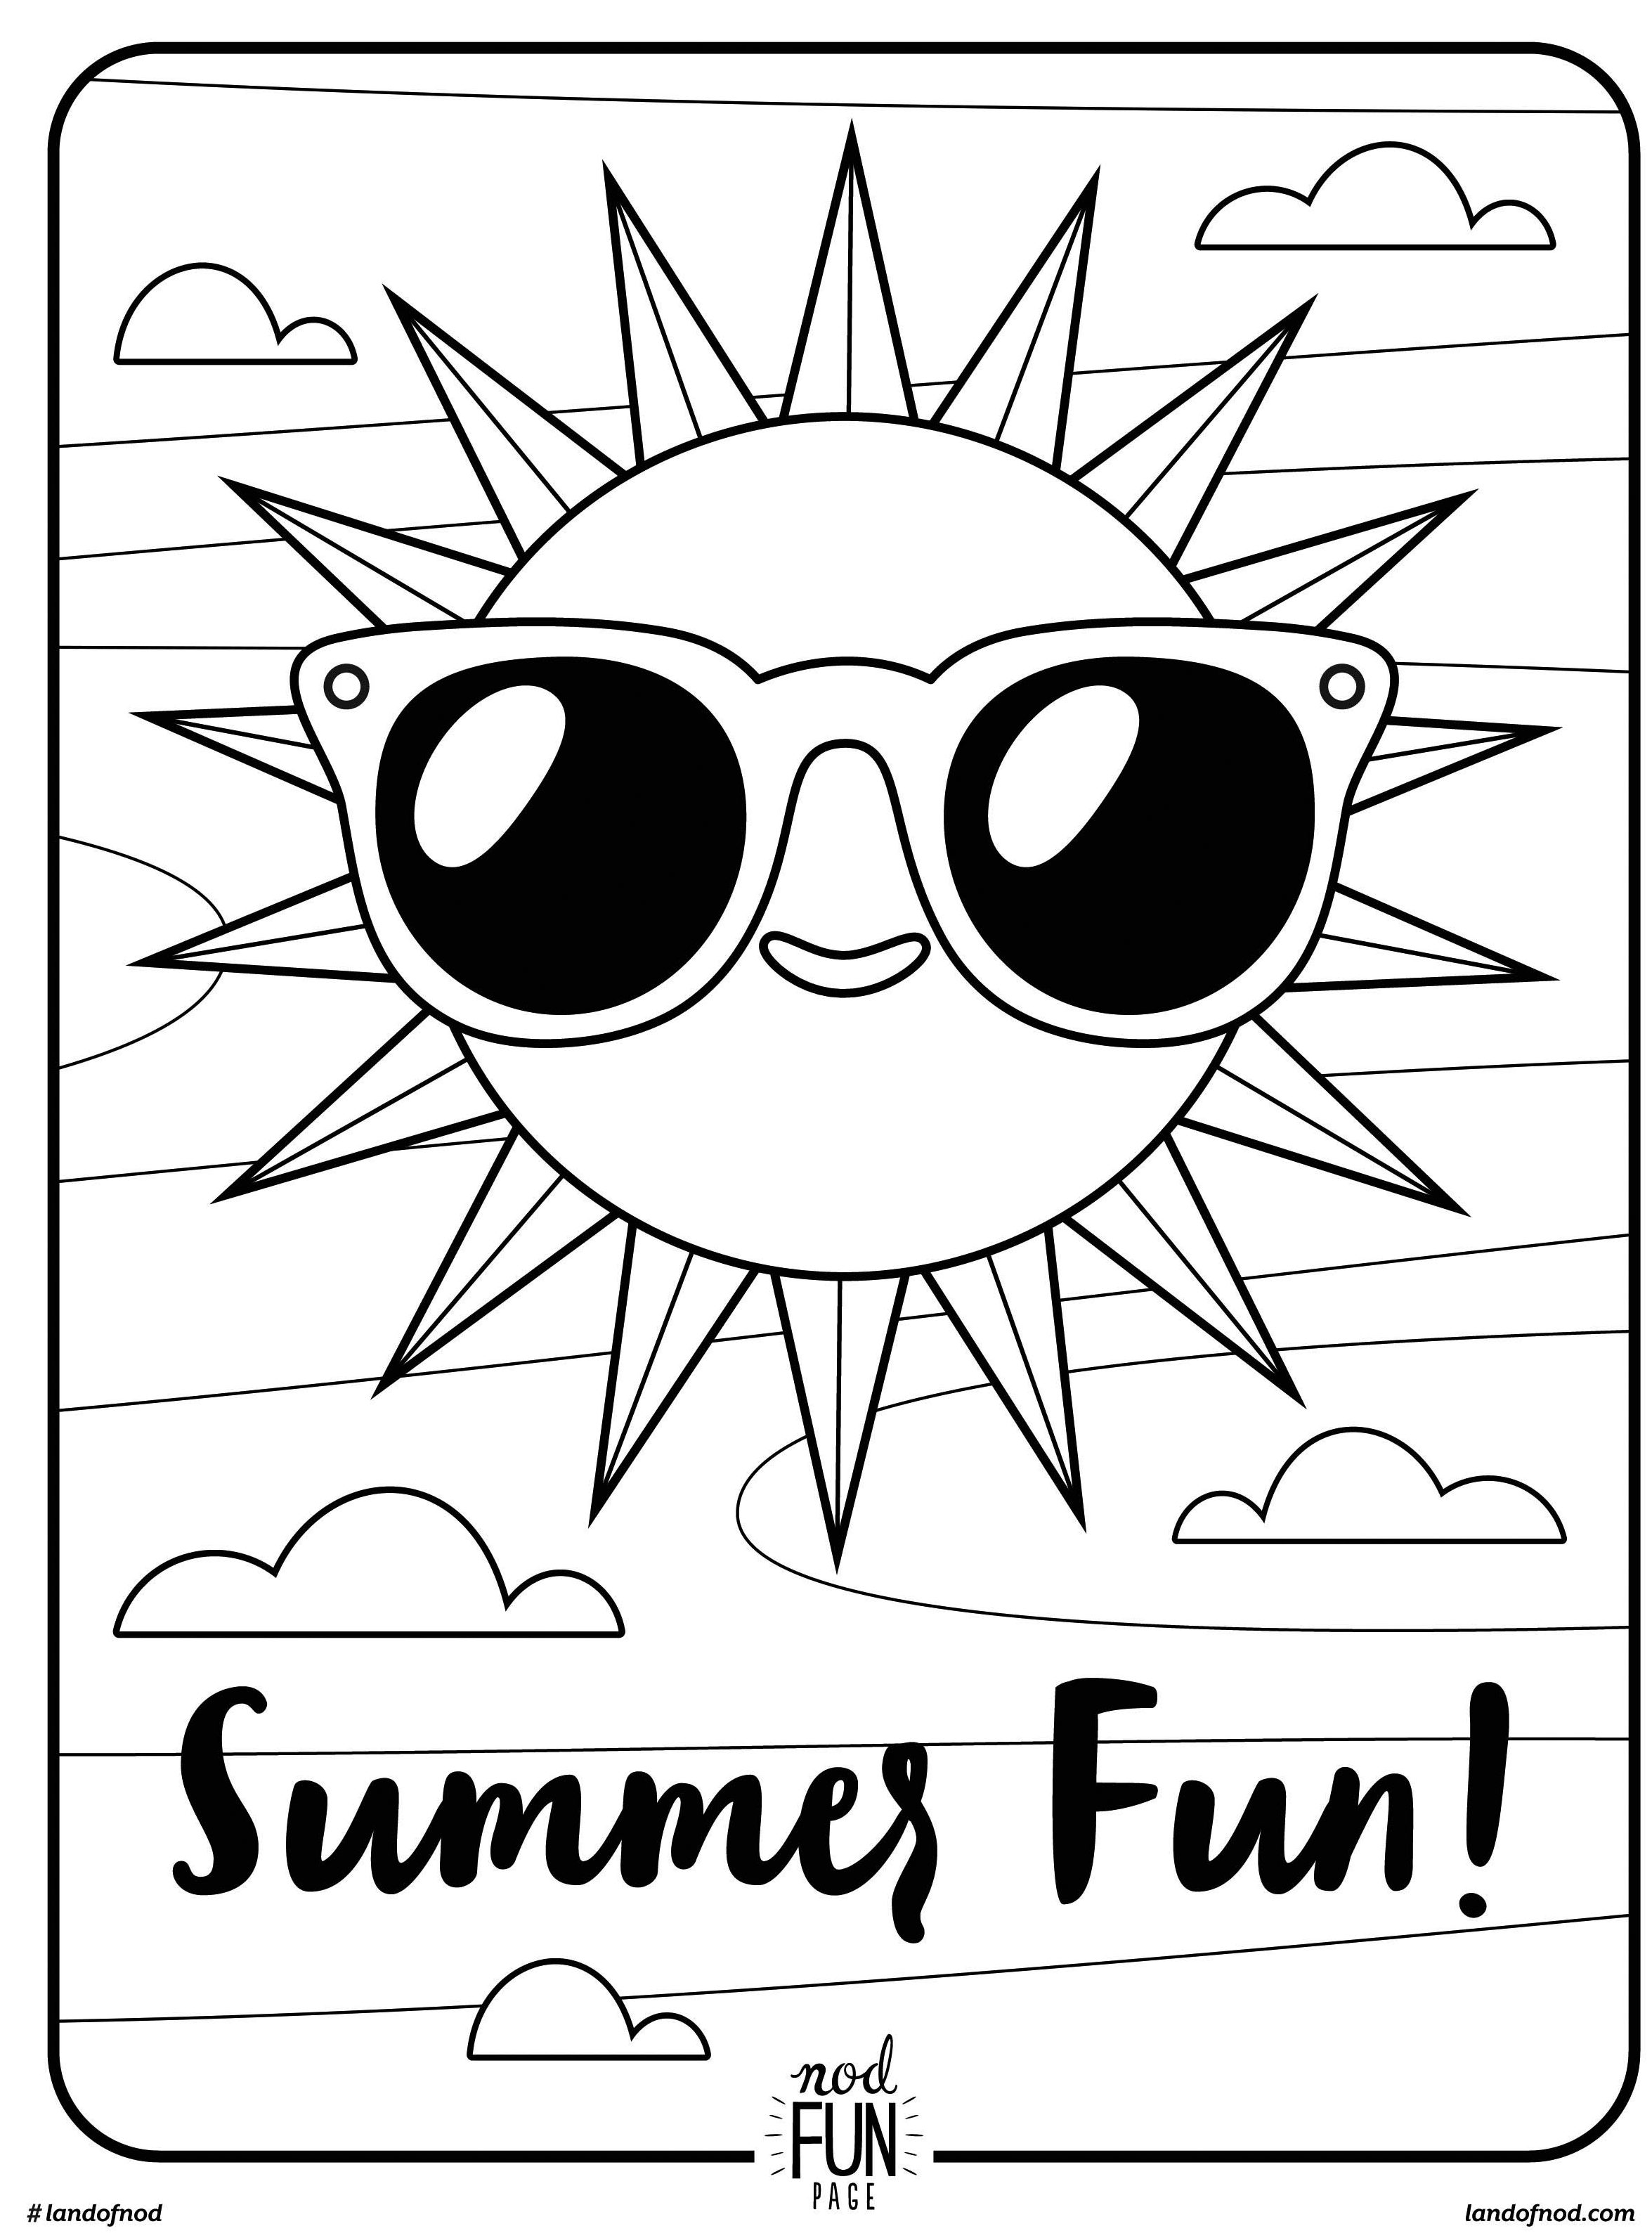 cool coloring pages for teenagers free printable coloring page summer fun cratekids blog teenagers coloring cool for pages